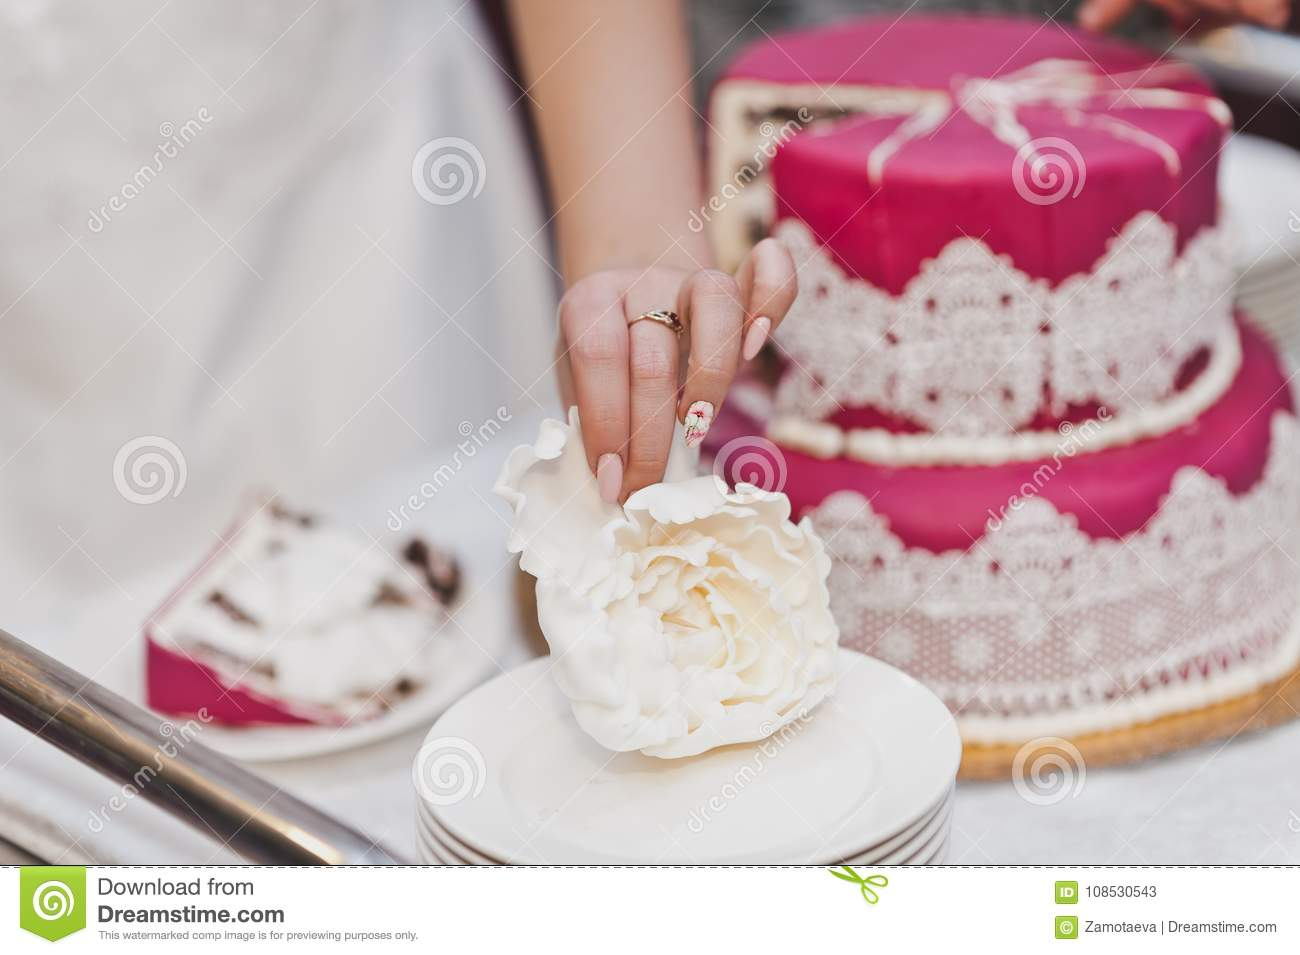 Parts Of A Wedding.The Division Into Parts Of The Wedding Cake 7999 Stock